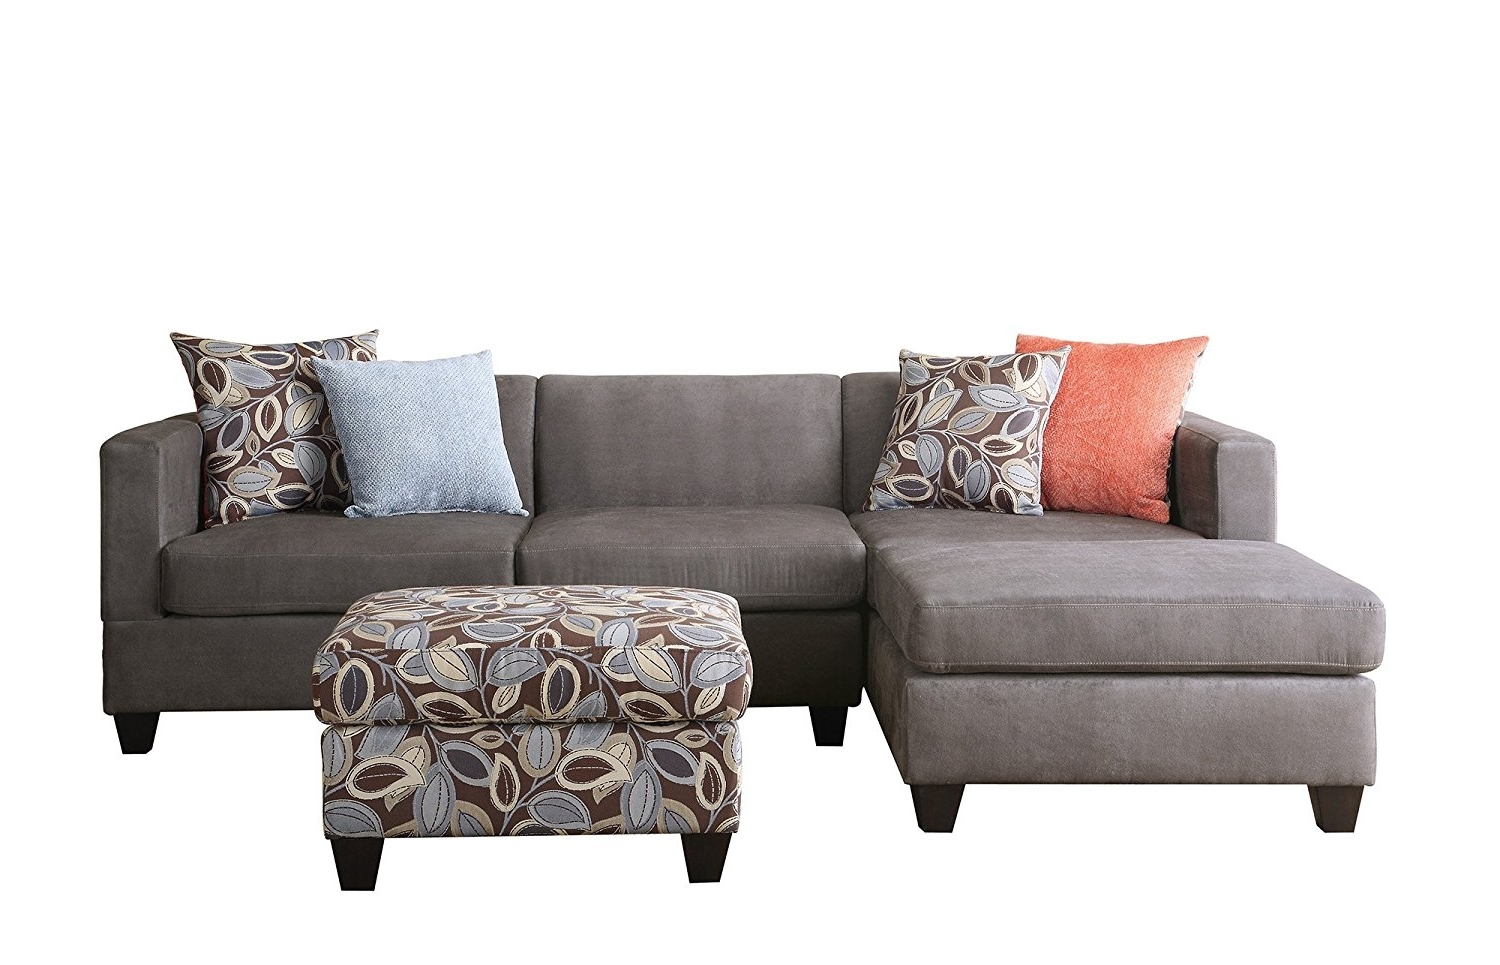 Sectional Sofas At Amazon Within 2018 Amazon: Bobkona Poundex Simplistic Collection 3 Piece (View 13 of 15)